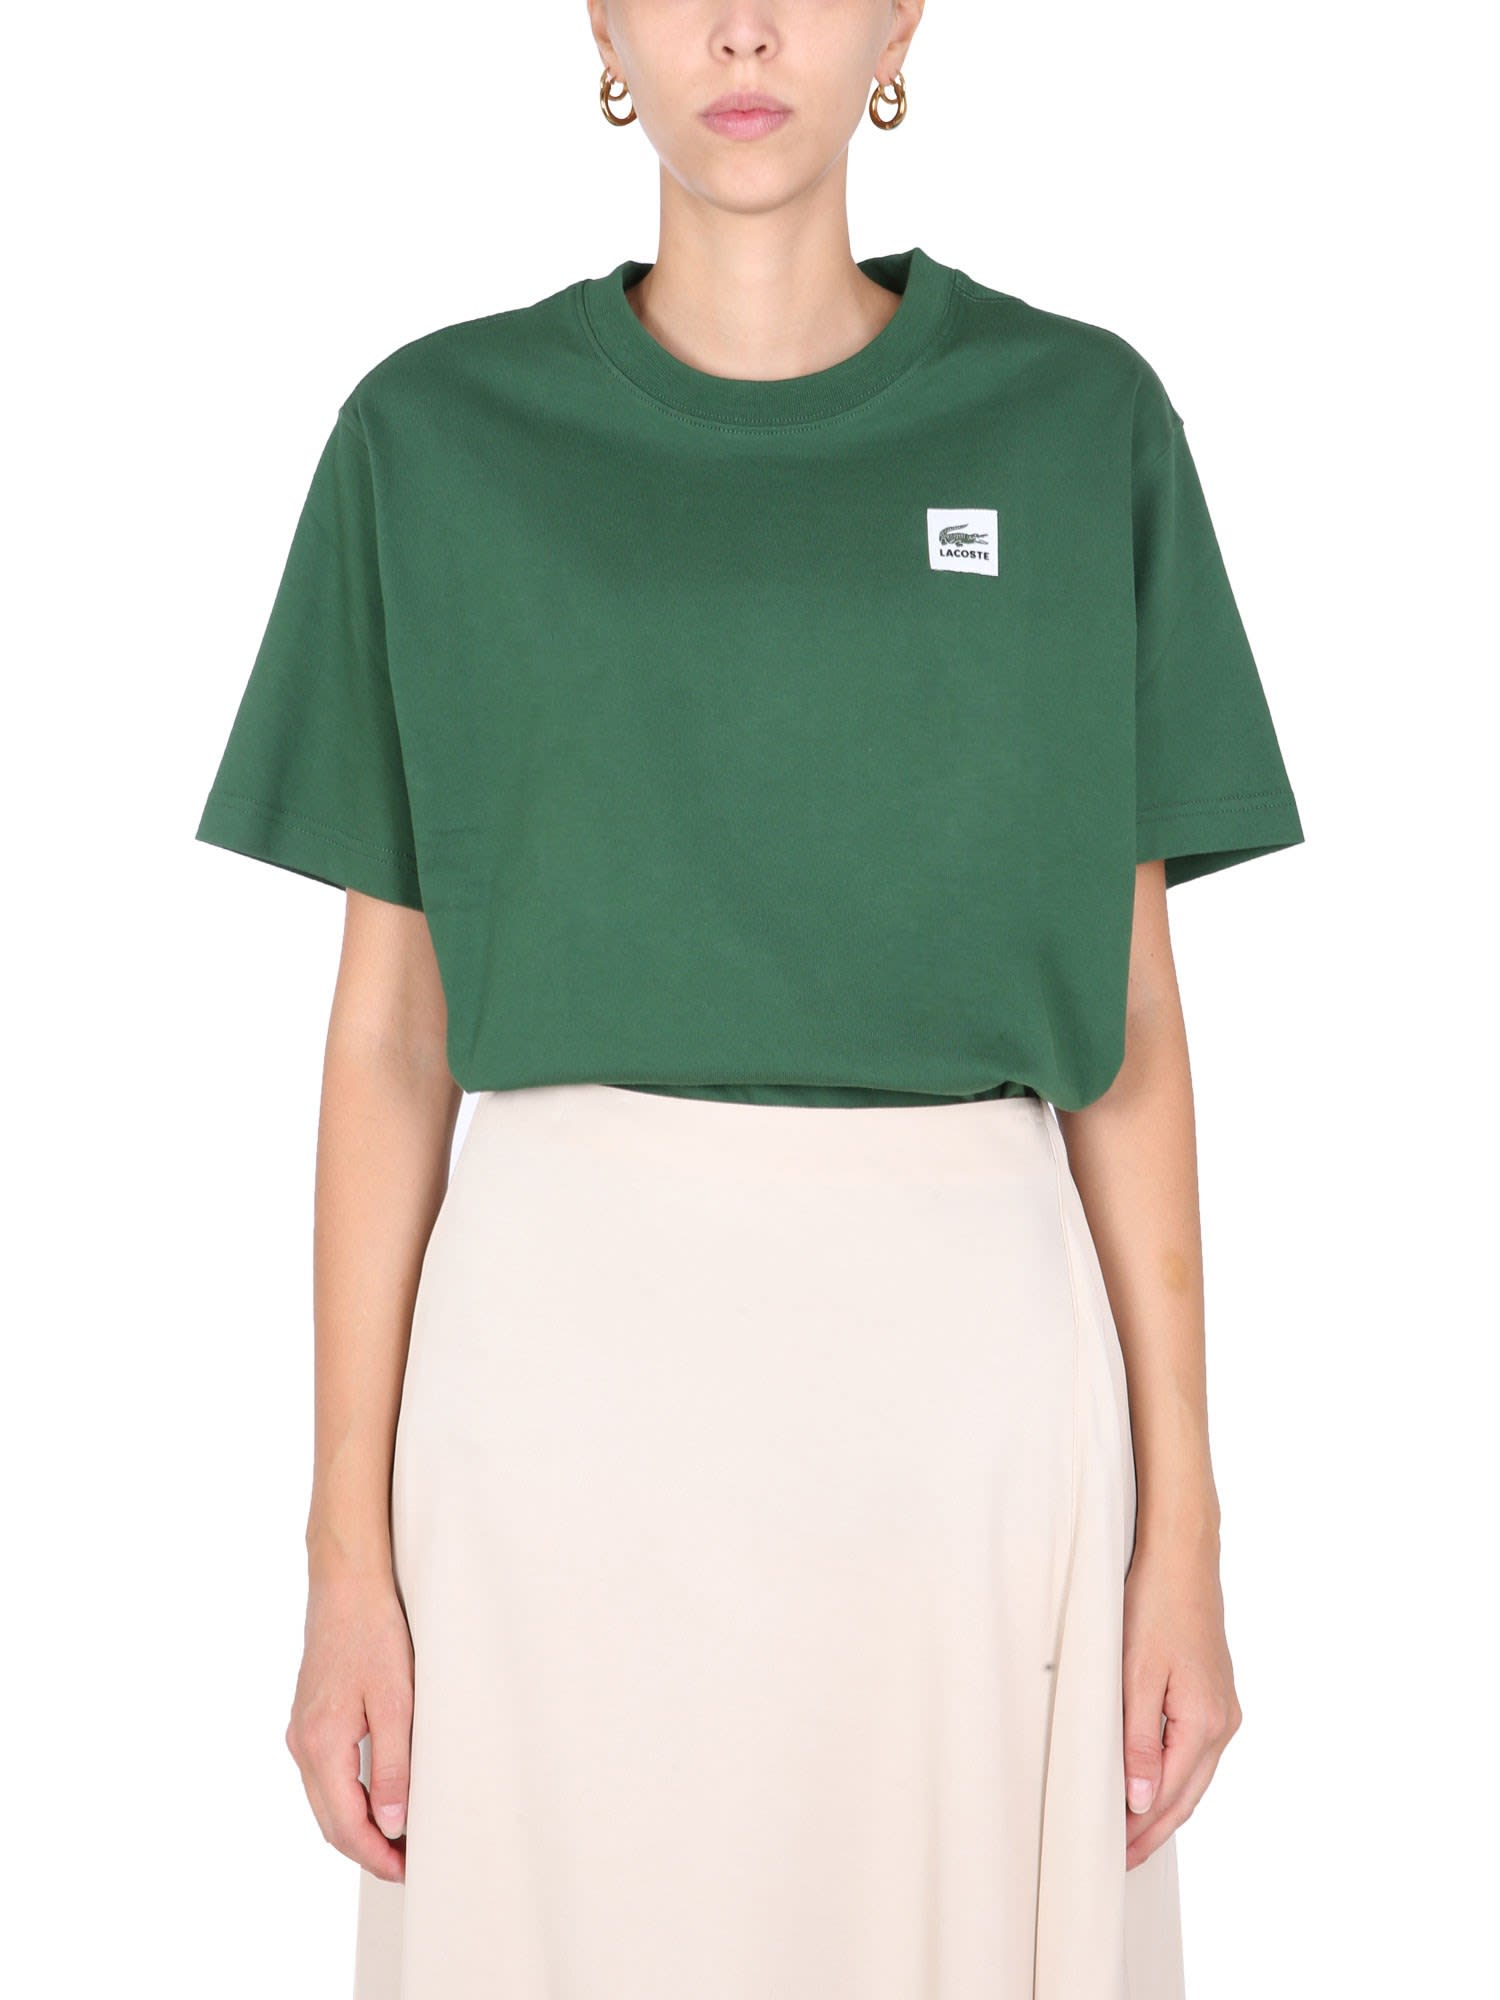 Lacoste L!VE T-shirt With Logo Patch